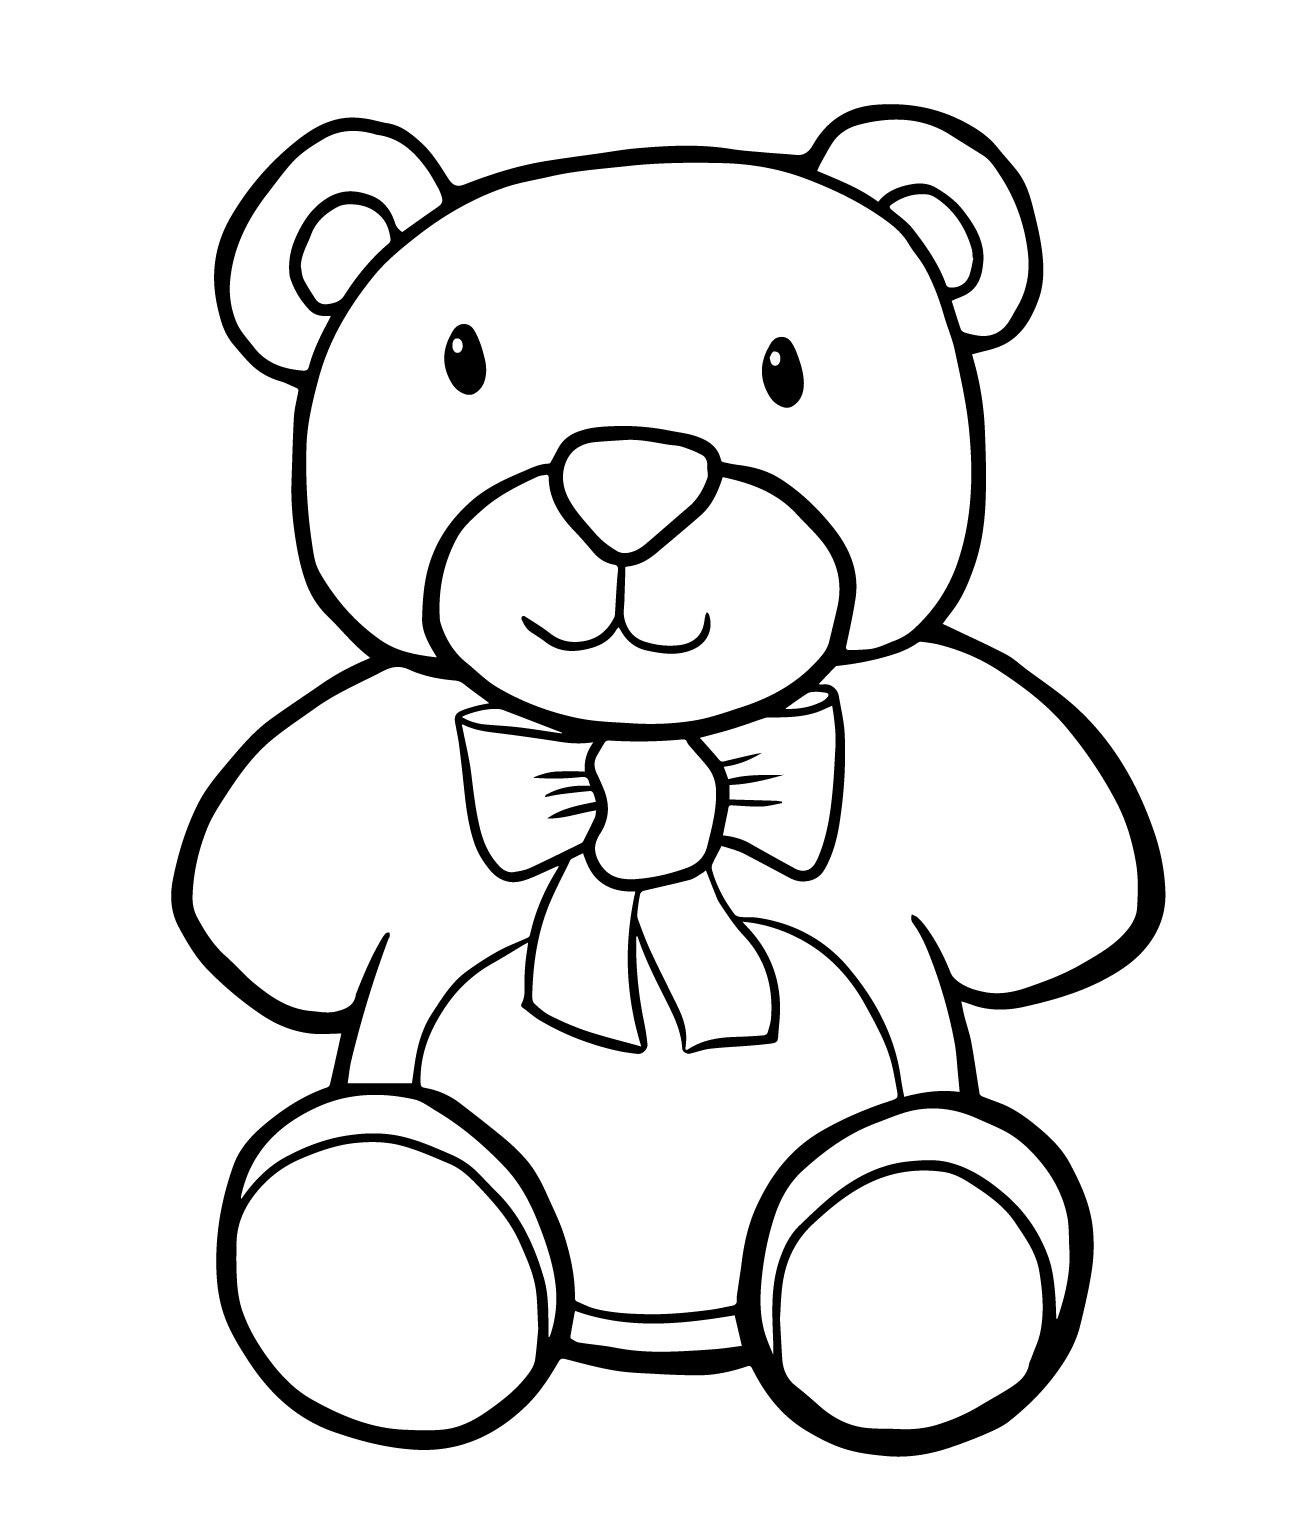 free coloring pages bears free printable teddy bear coloring pages for kids bears free coloring pages